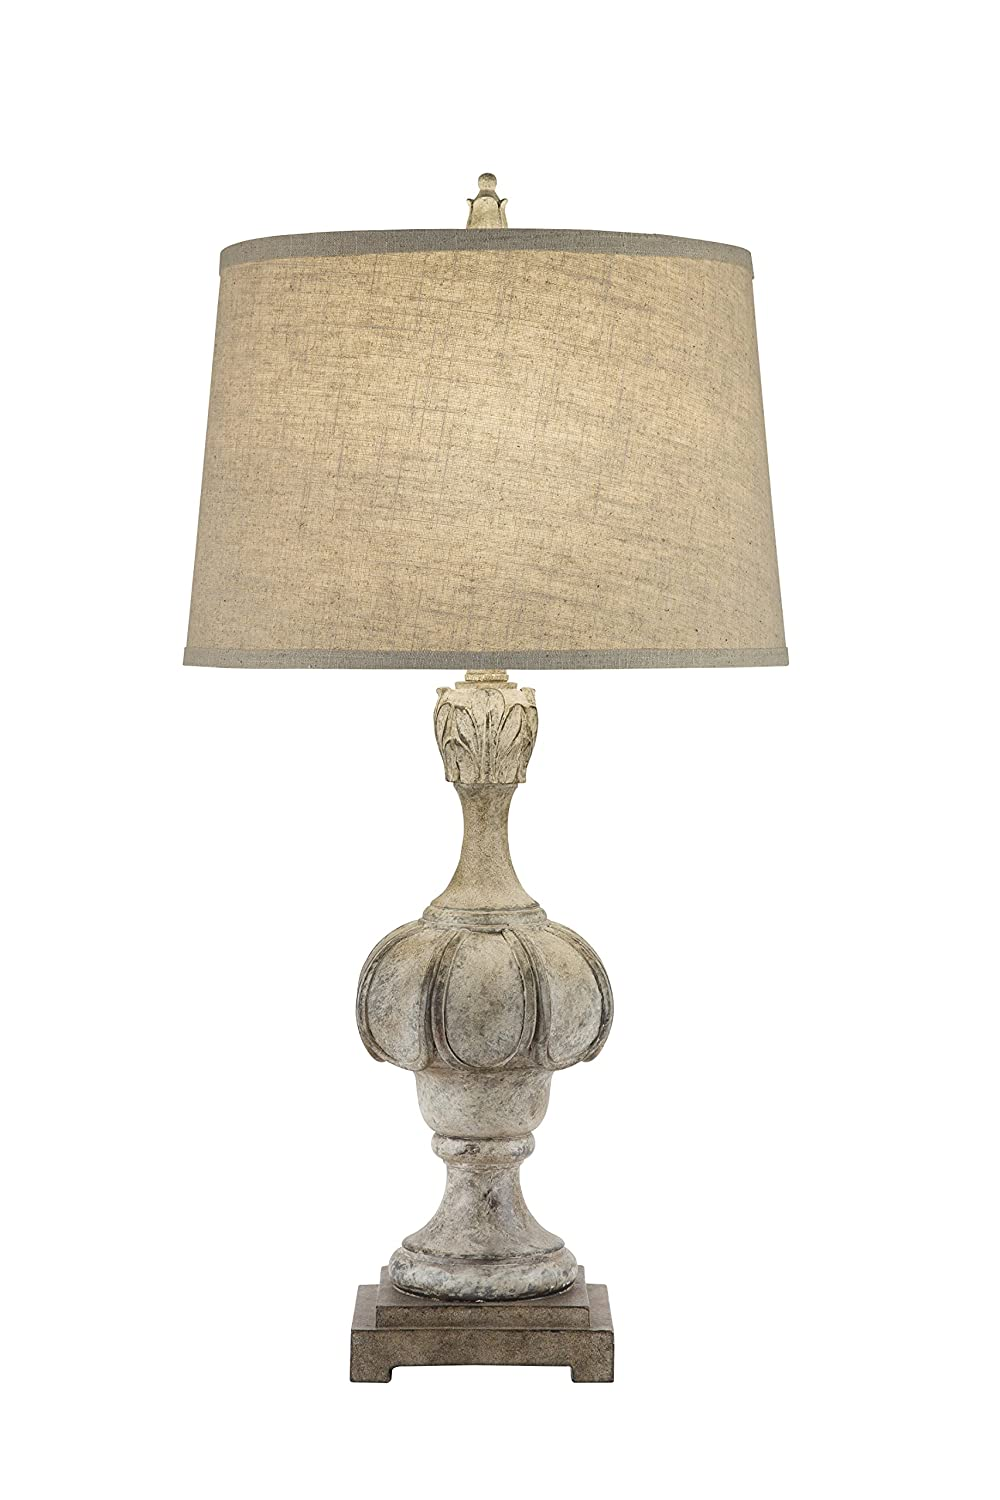 Bulb Included Catalina 19951-001 3-Way Weathered Distressed Wood Inspired Table Lamp with Oatmeal Linen Modified Drum Shade with Cream Silken Liner 15 x 29.5 x 15 Light Brown 15 x 29.5 x 15 Catalina Lighting